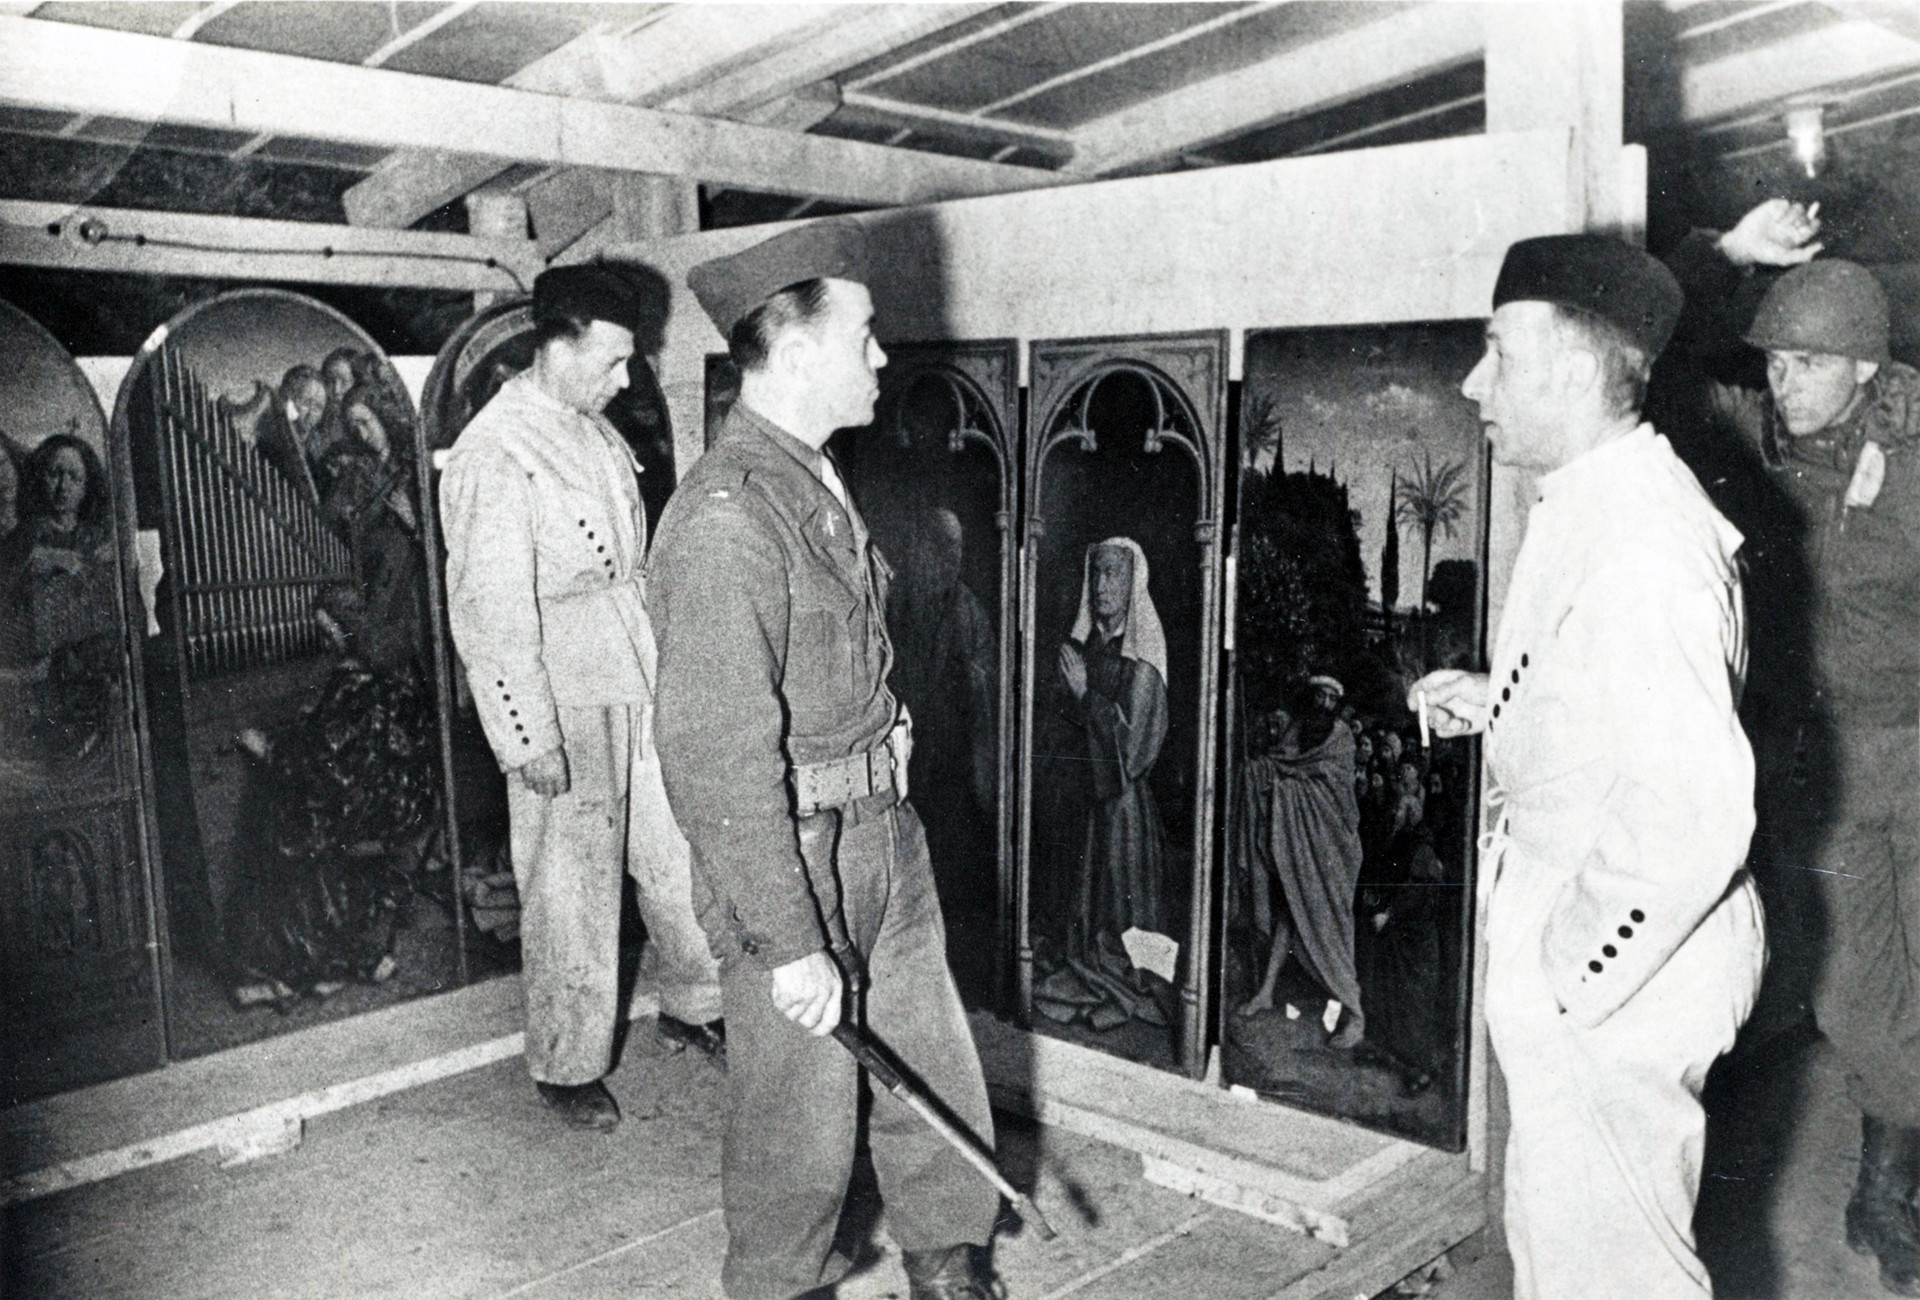 U.S. military officers examining the looted altarpiece 'the Adoration of the Mystic Lamb' at Altaussee Salt Mine